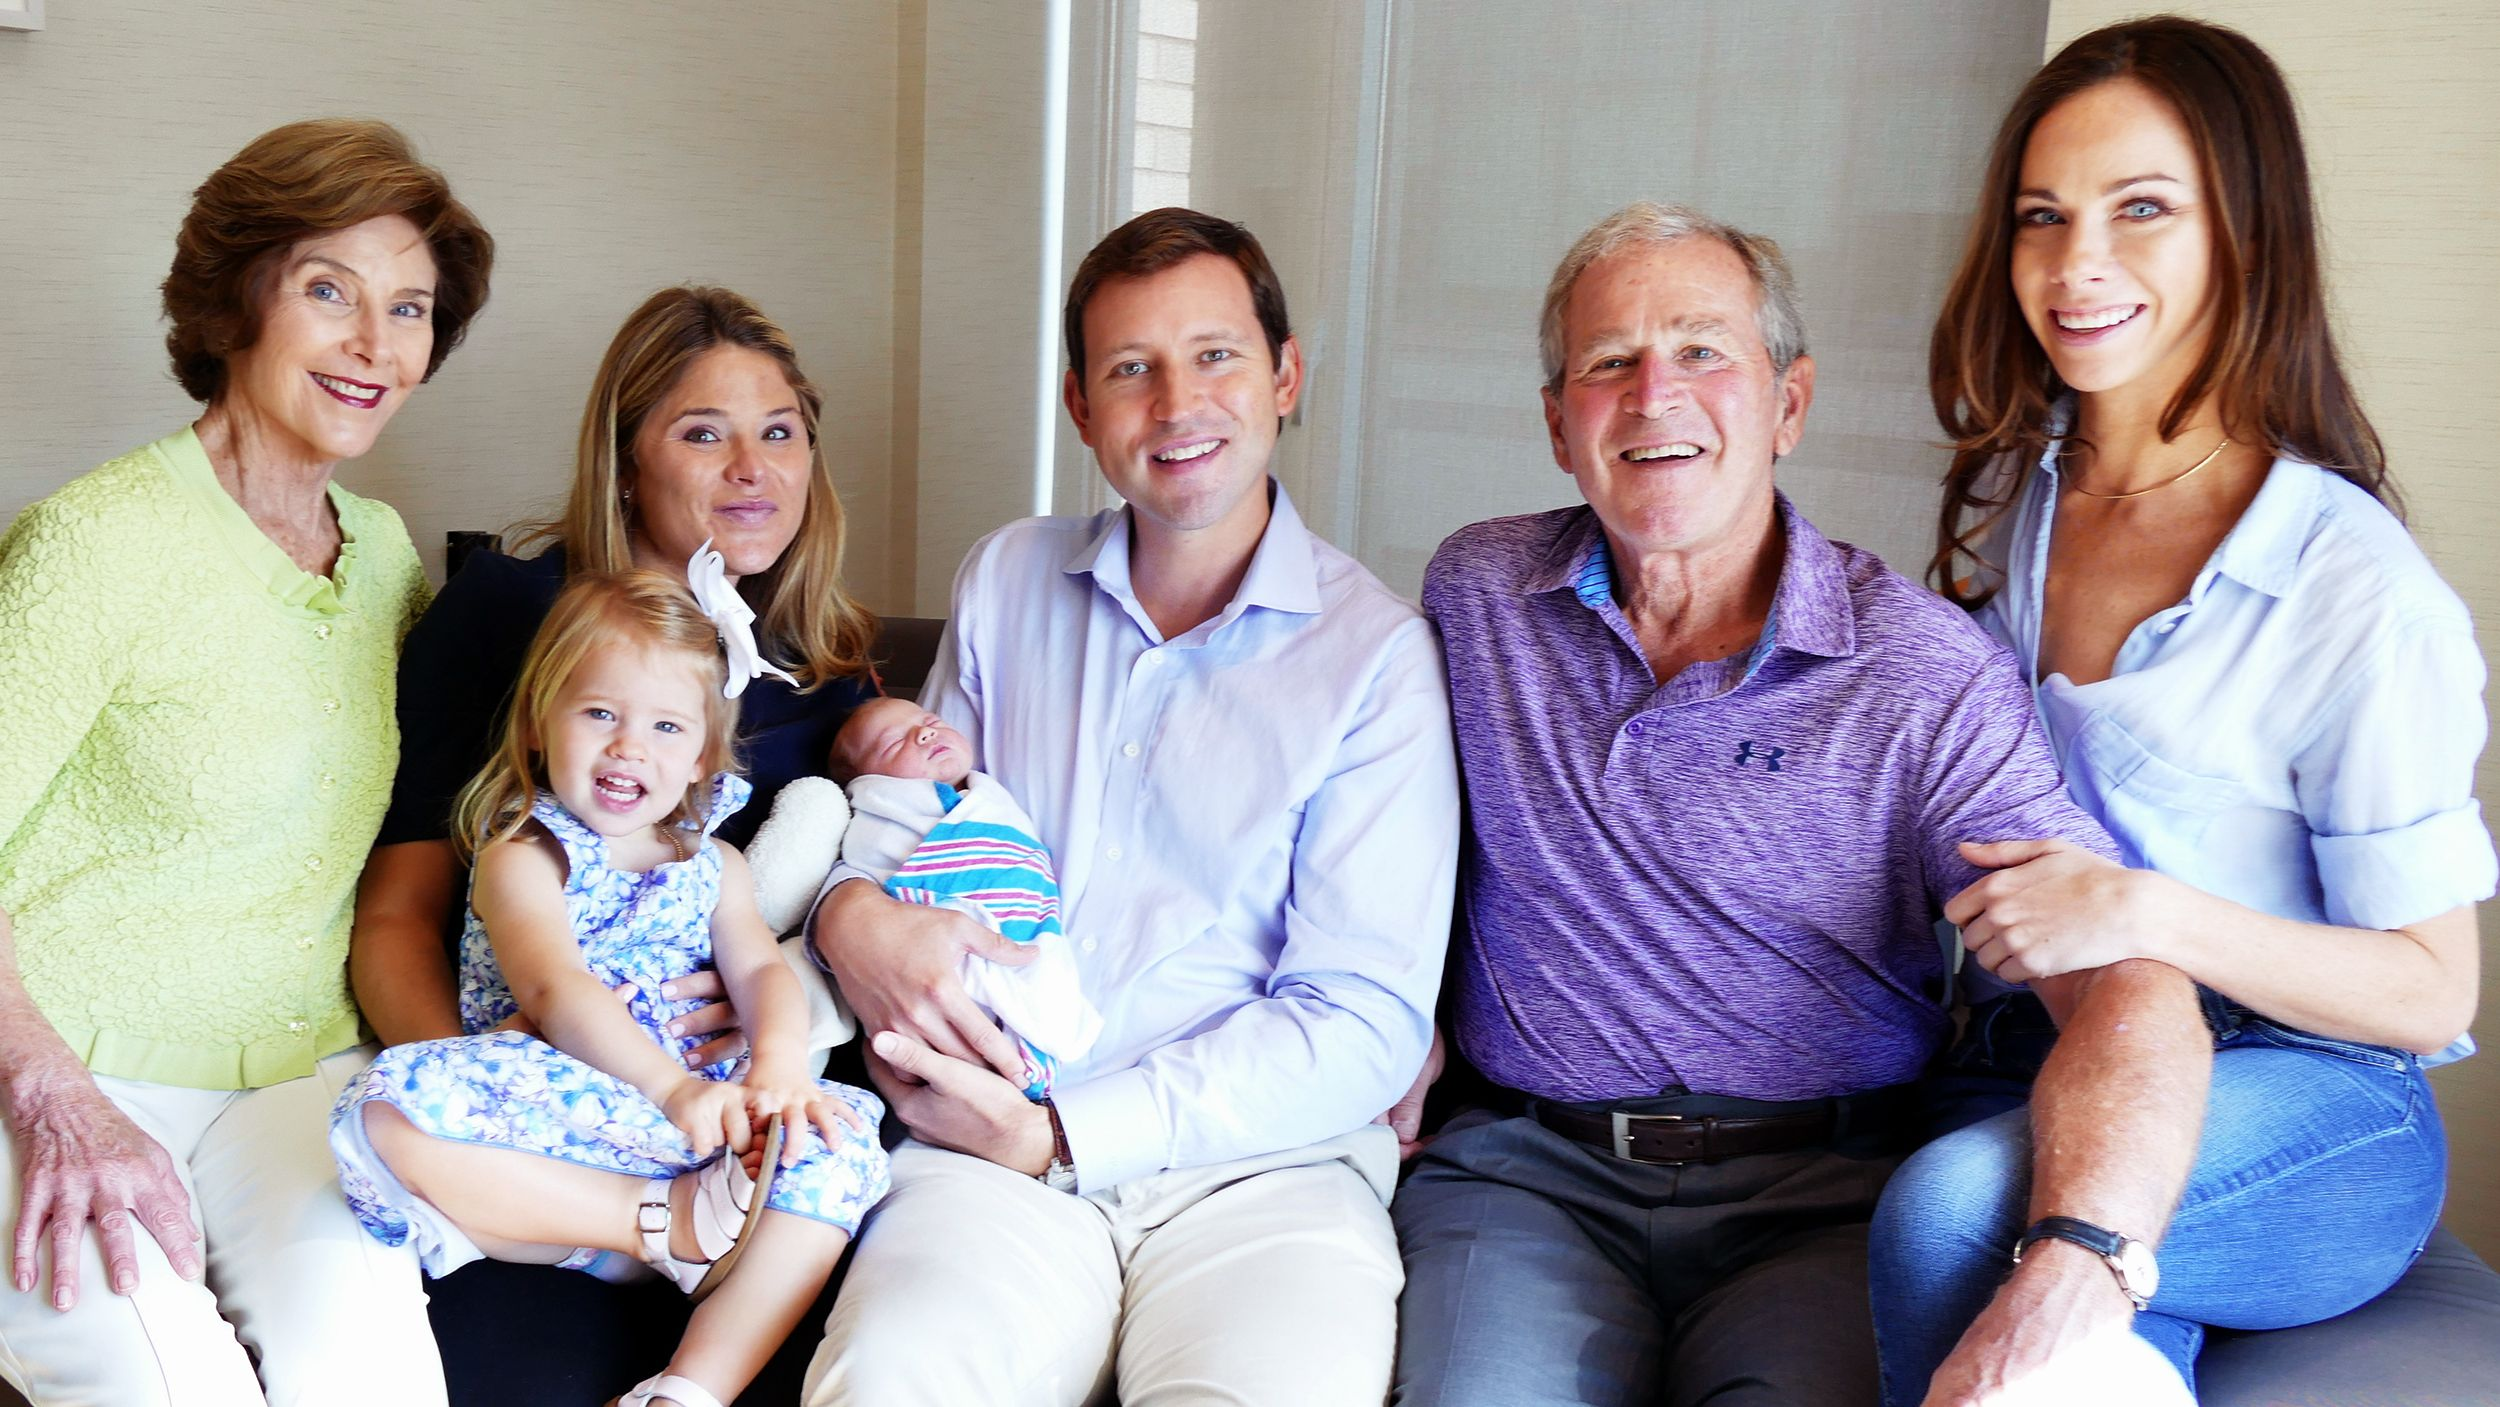 Pin On Presidents The First Families